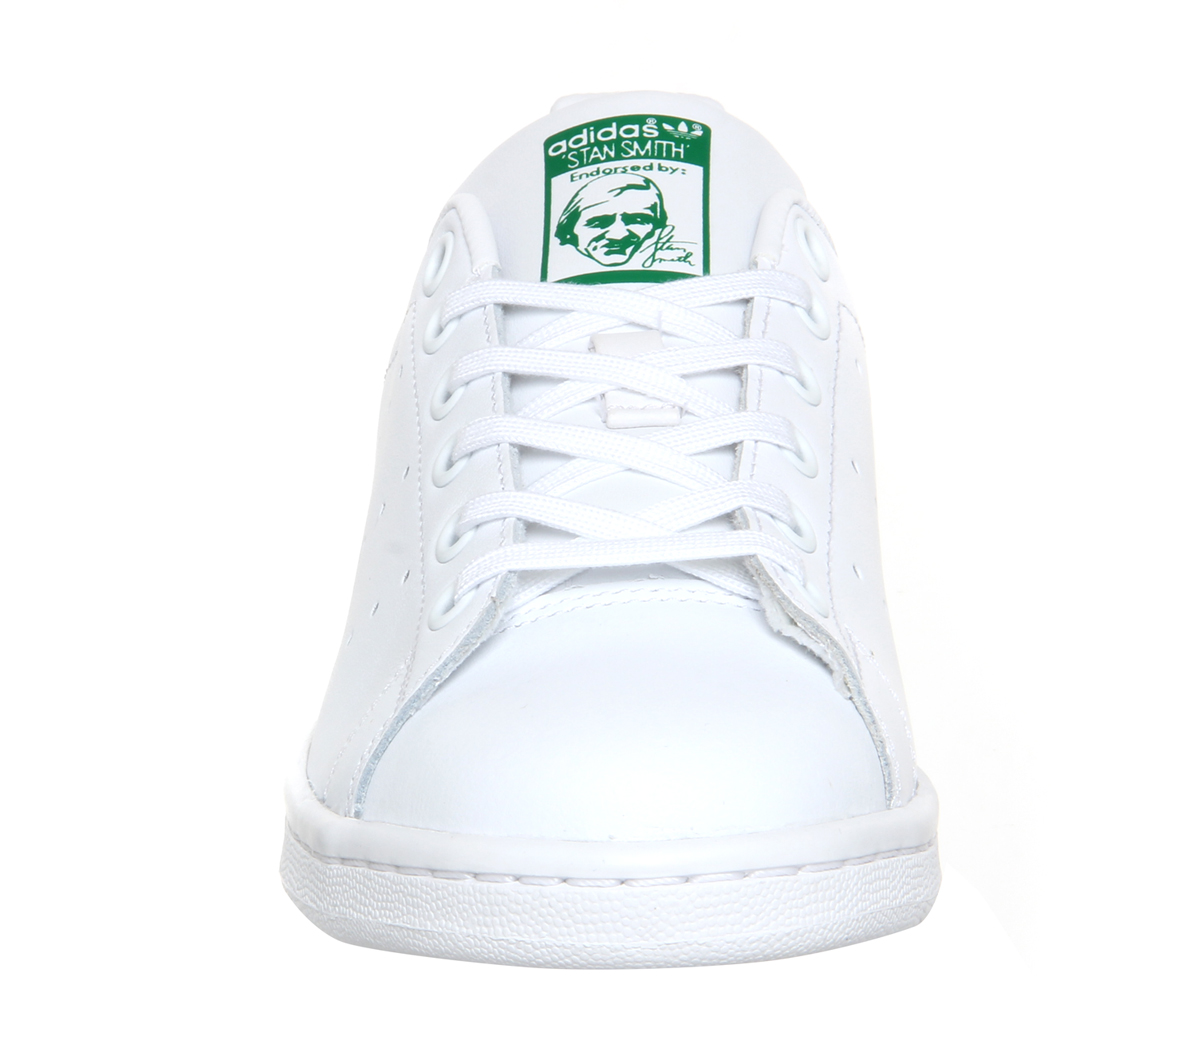 Mens-Adidas-Stan-Smith-Trainers-Core-White-Green-Trainers-Shoes thumbnail 5